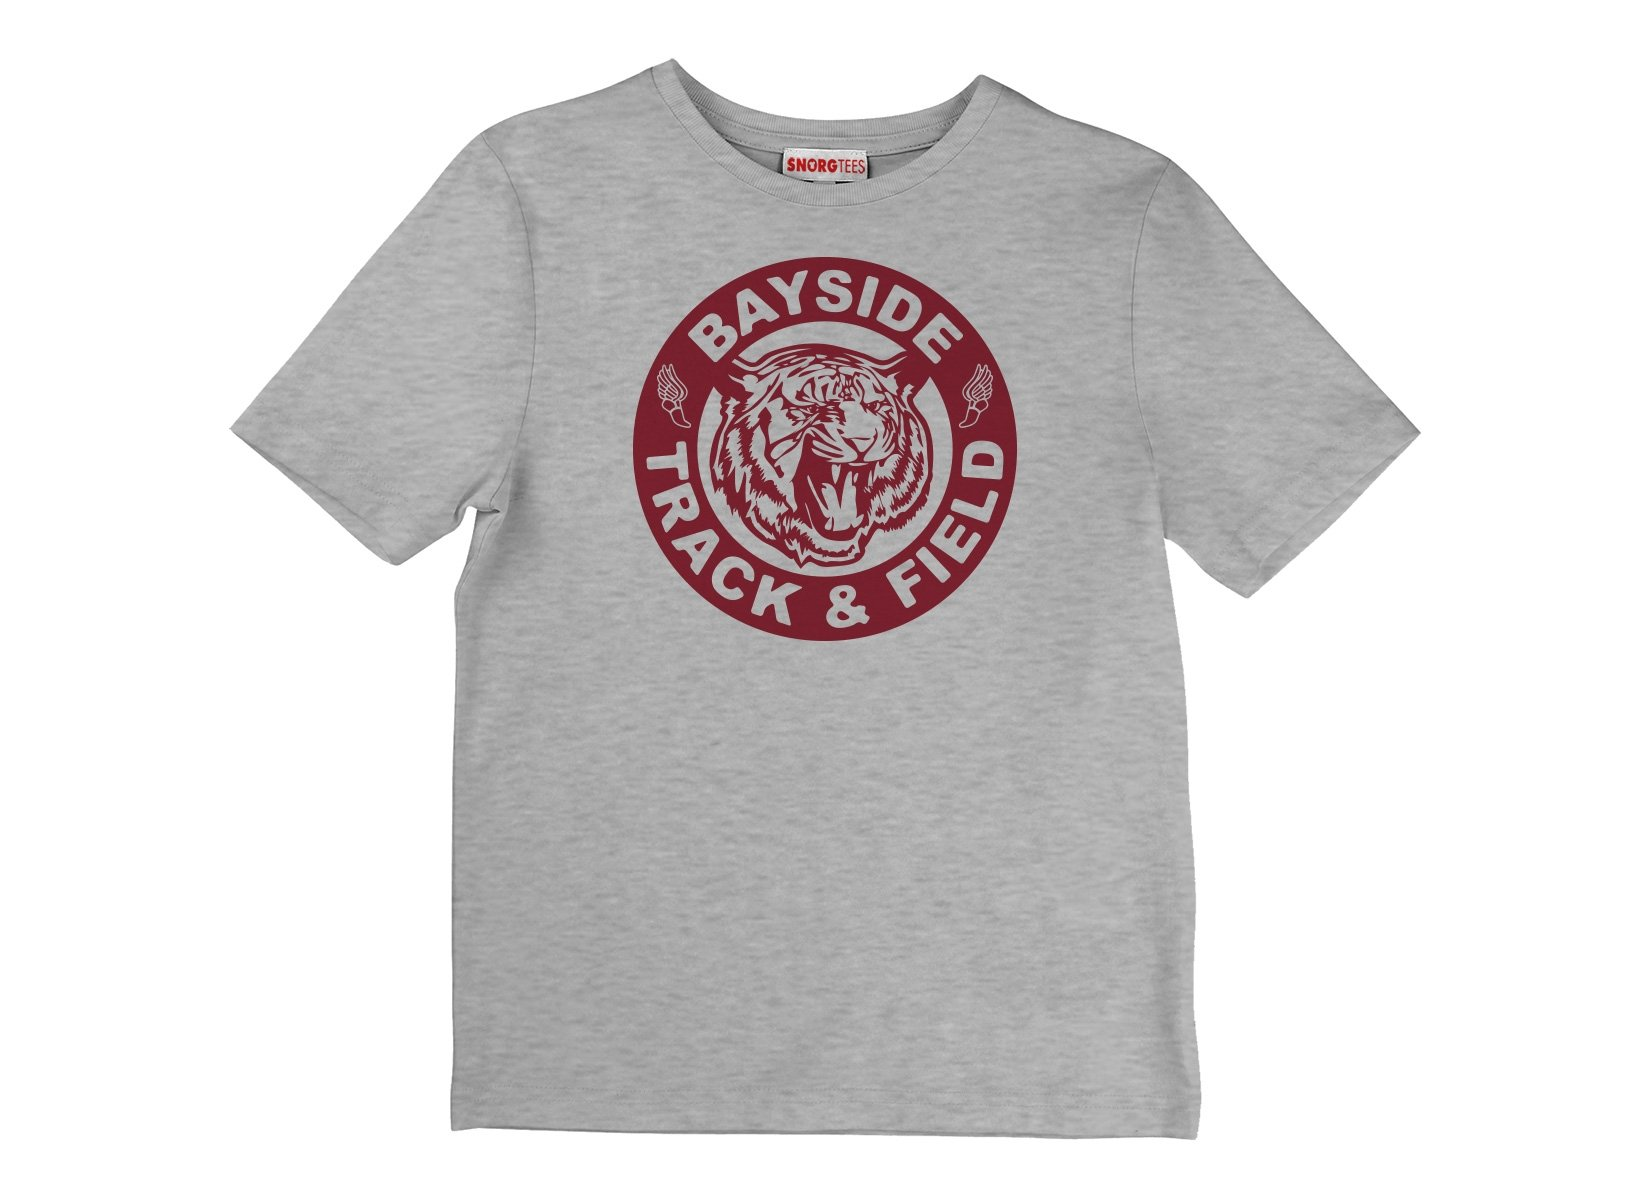 Bayside Track & Field on Kids T-Shirt